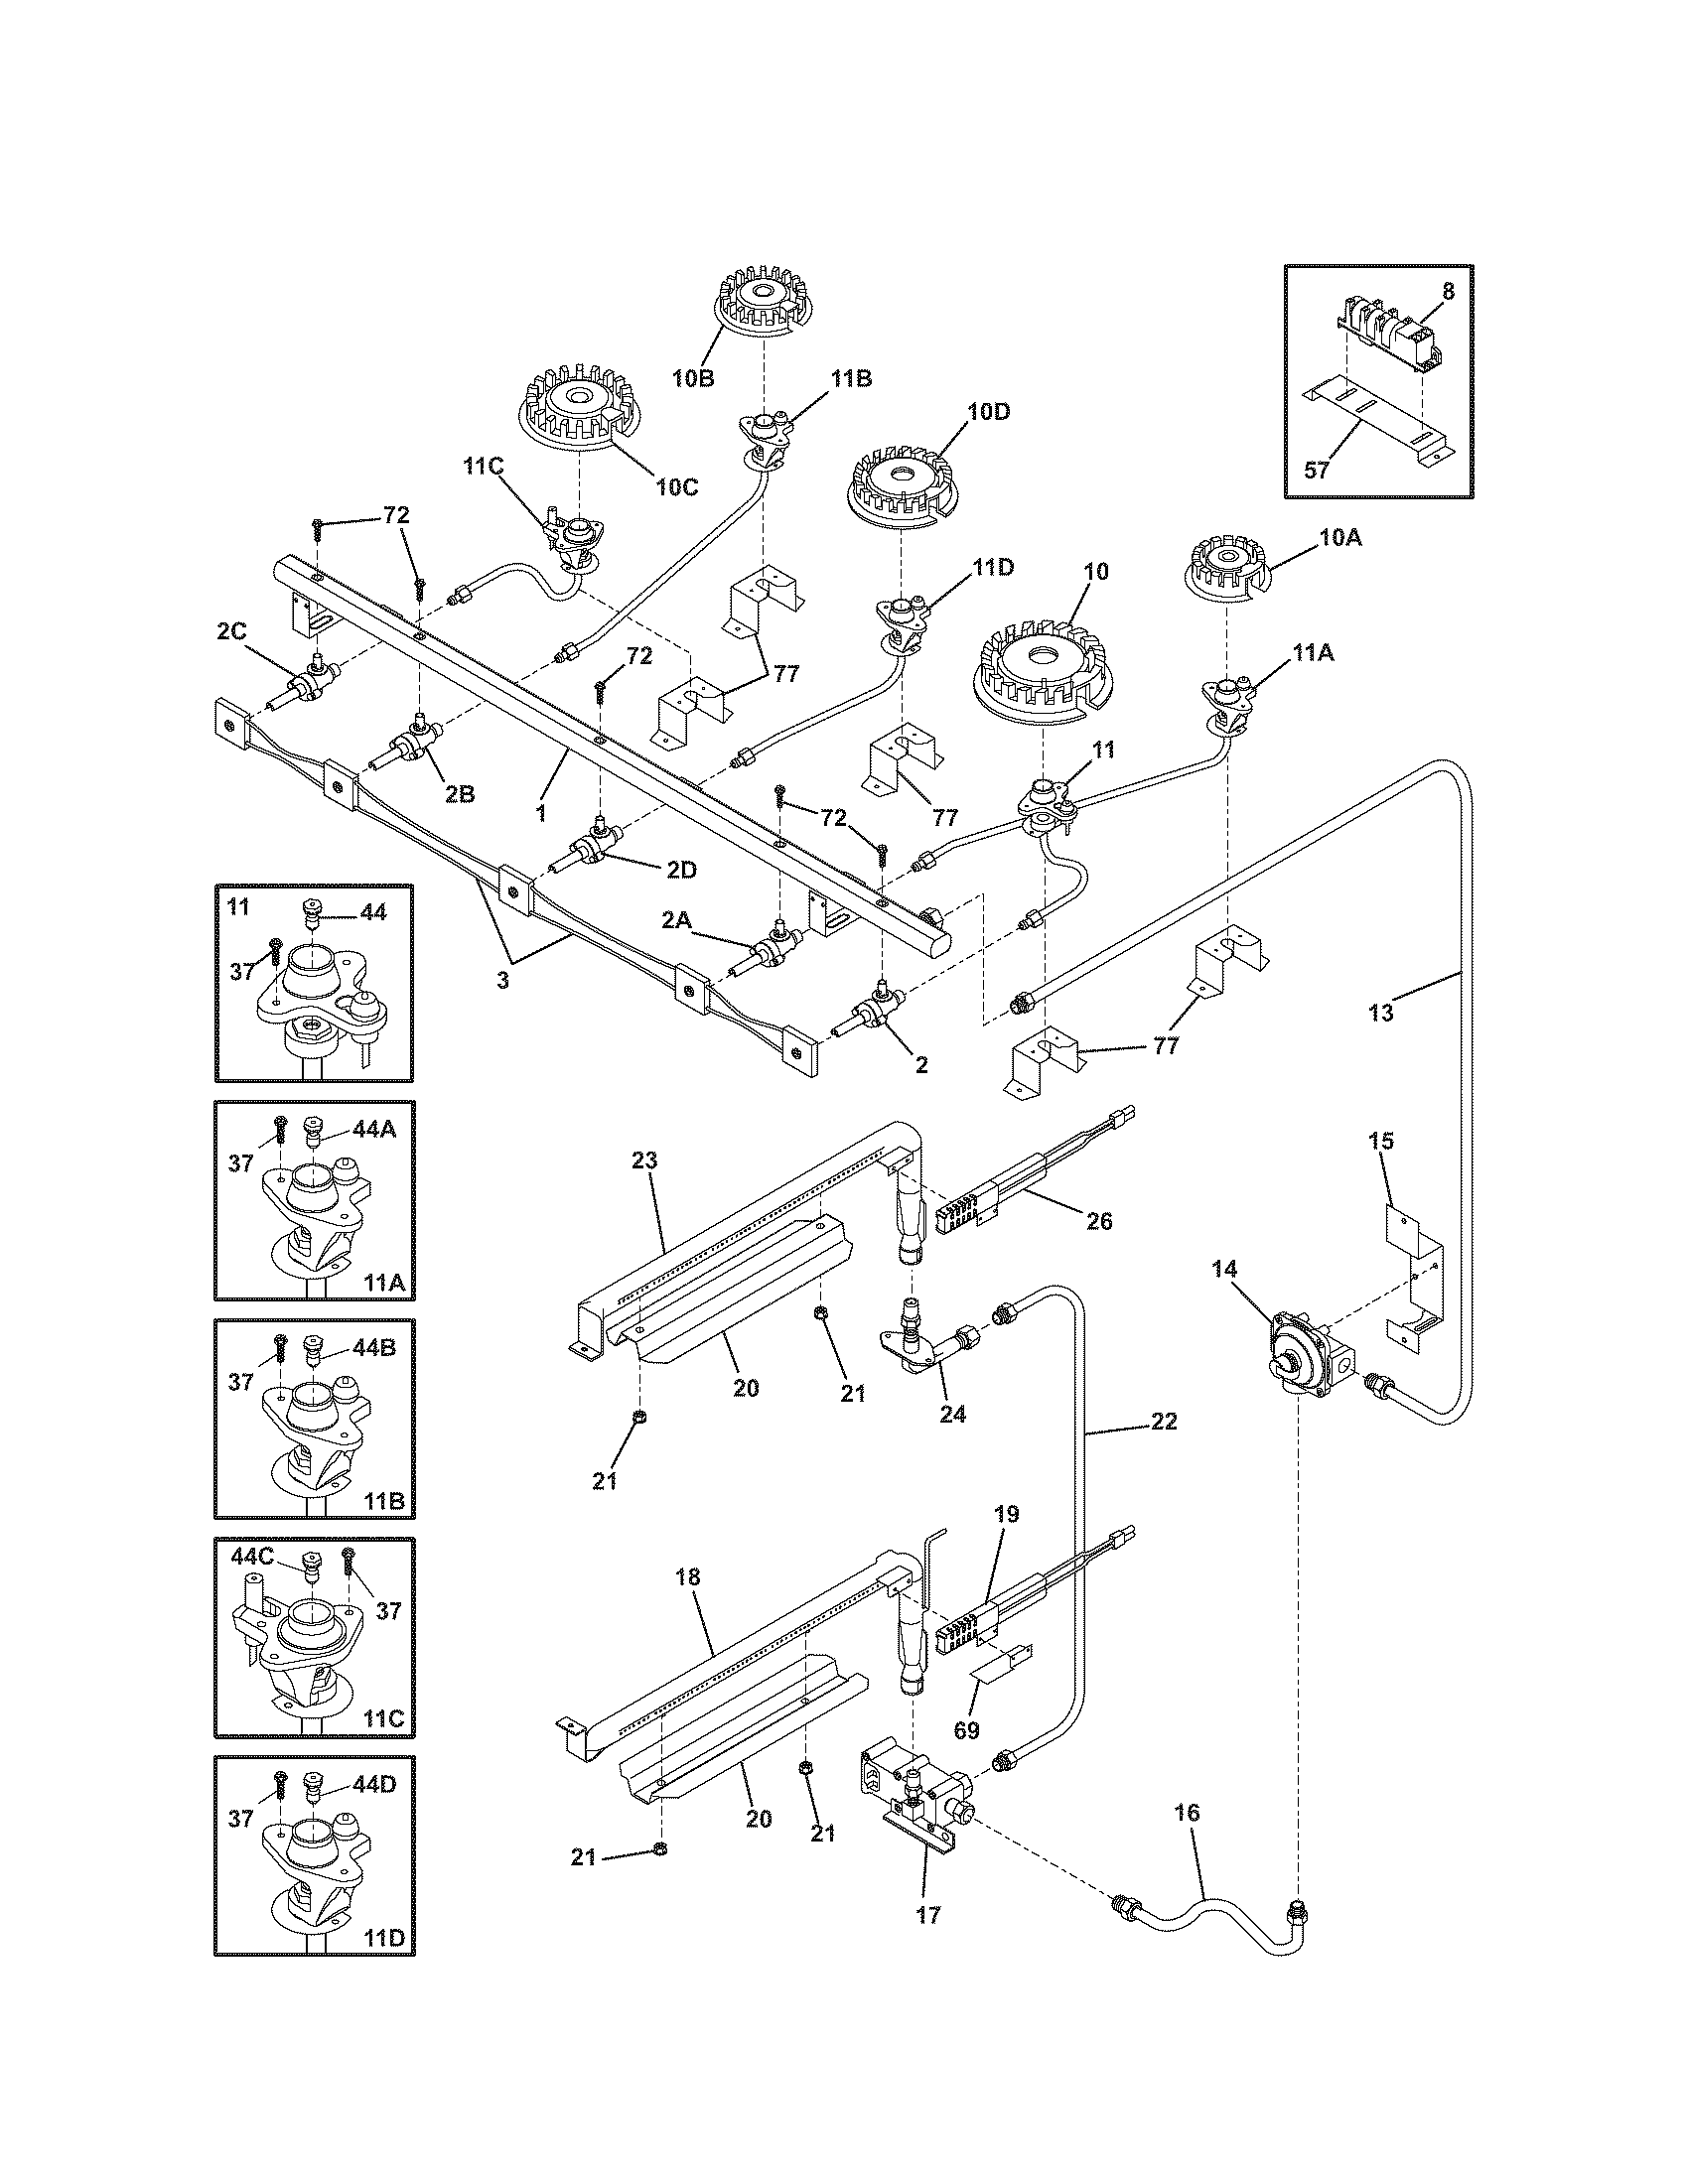 BURNER Diagram & Parts List for Model 79075403501 Kenmore